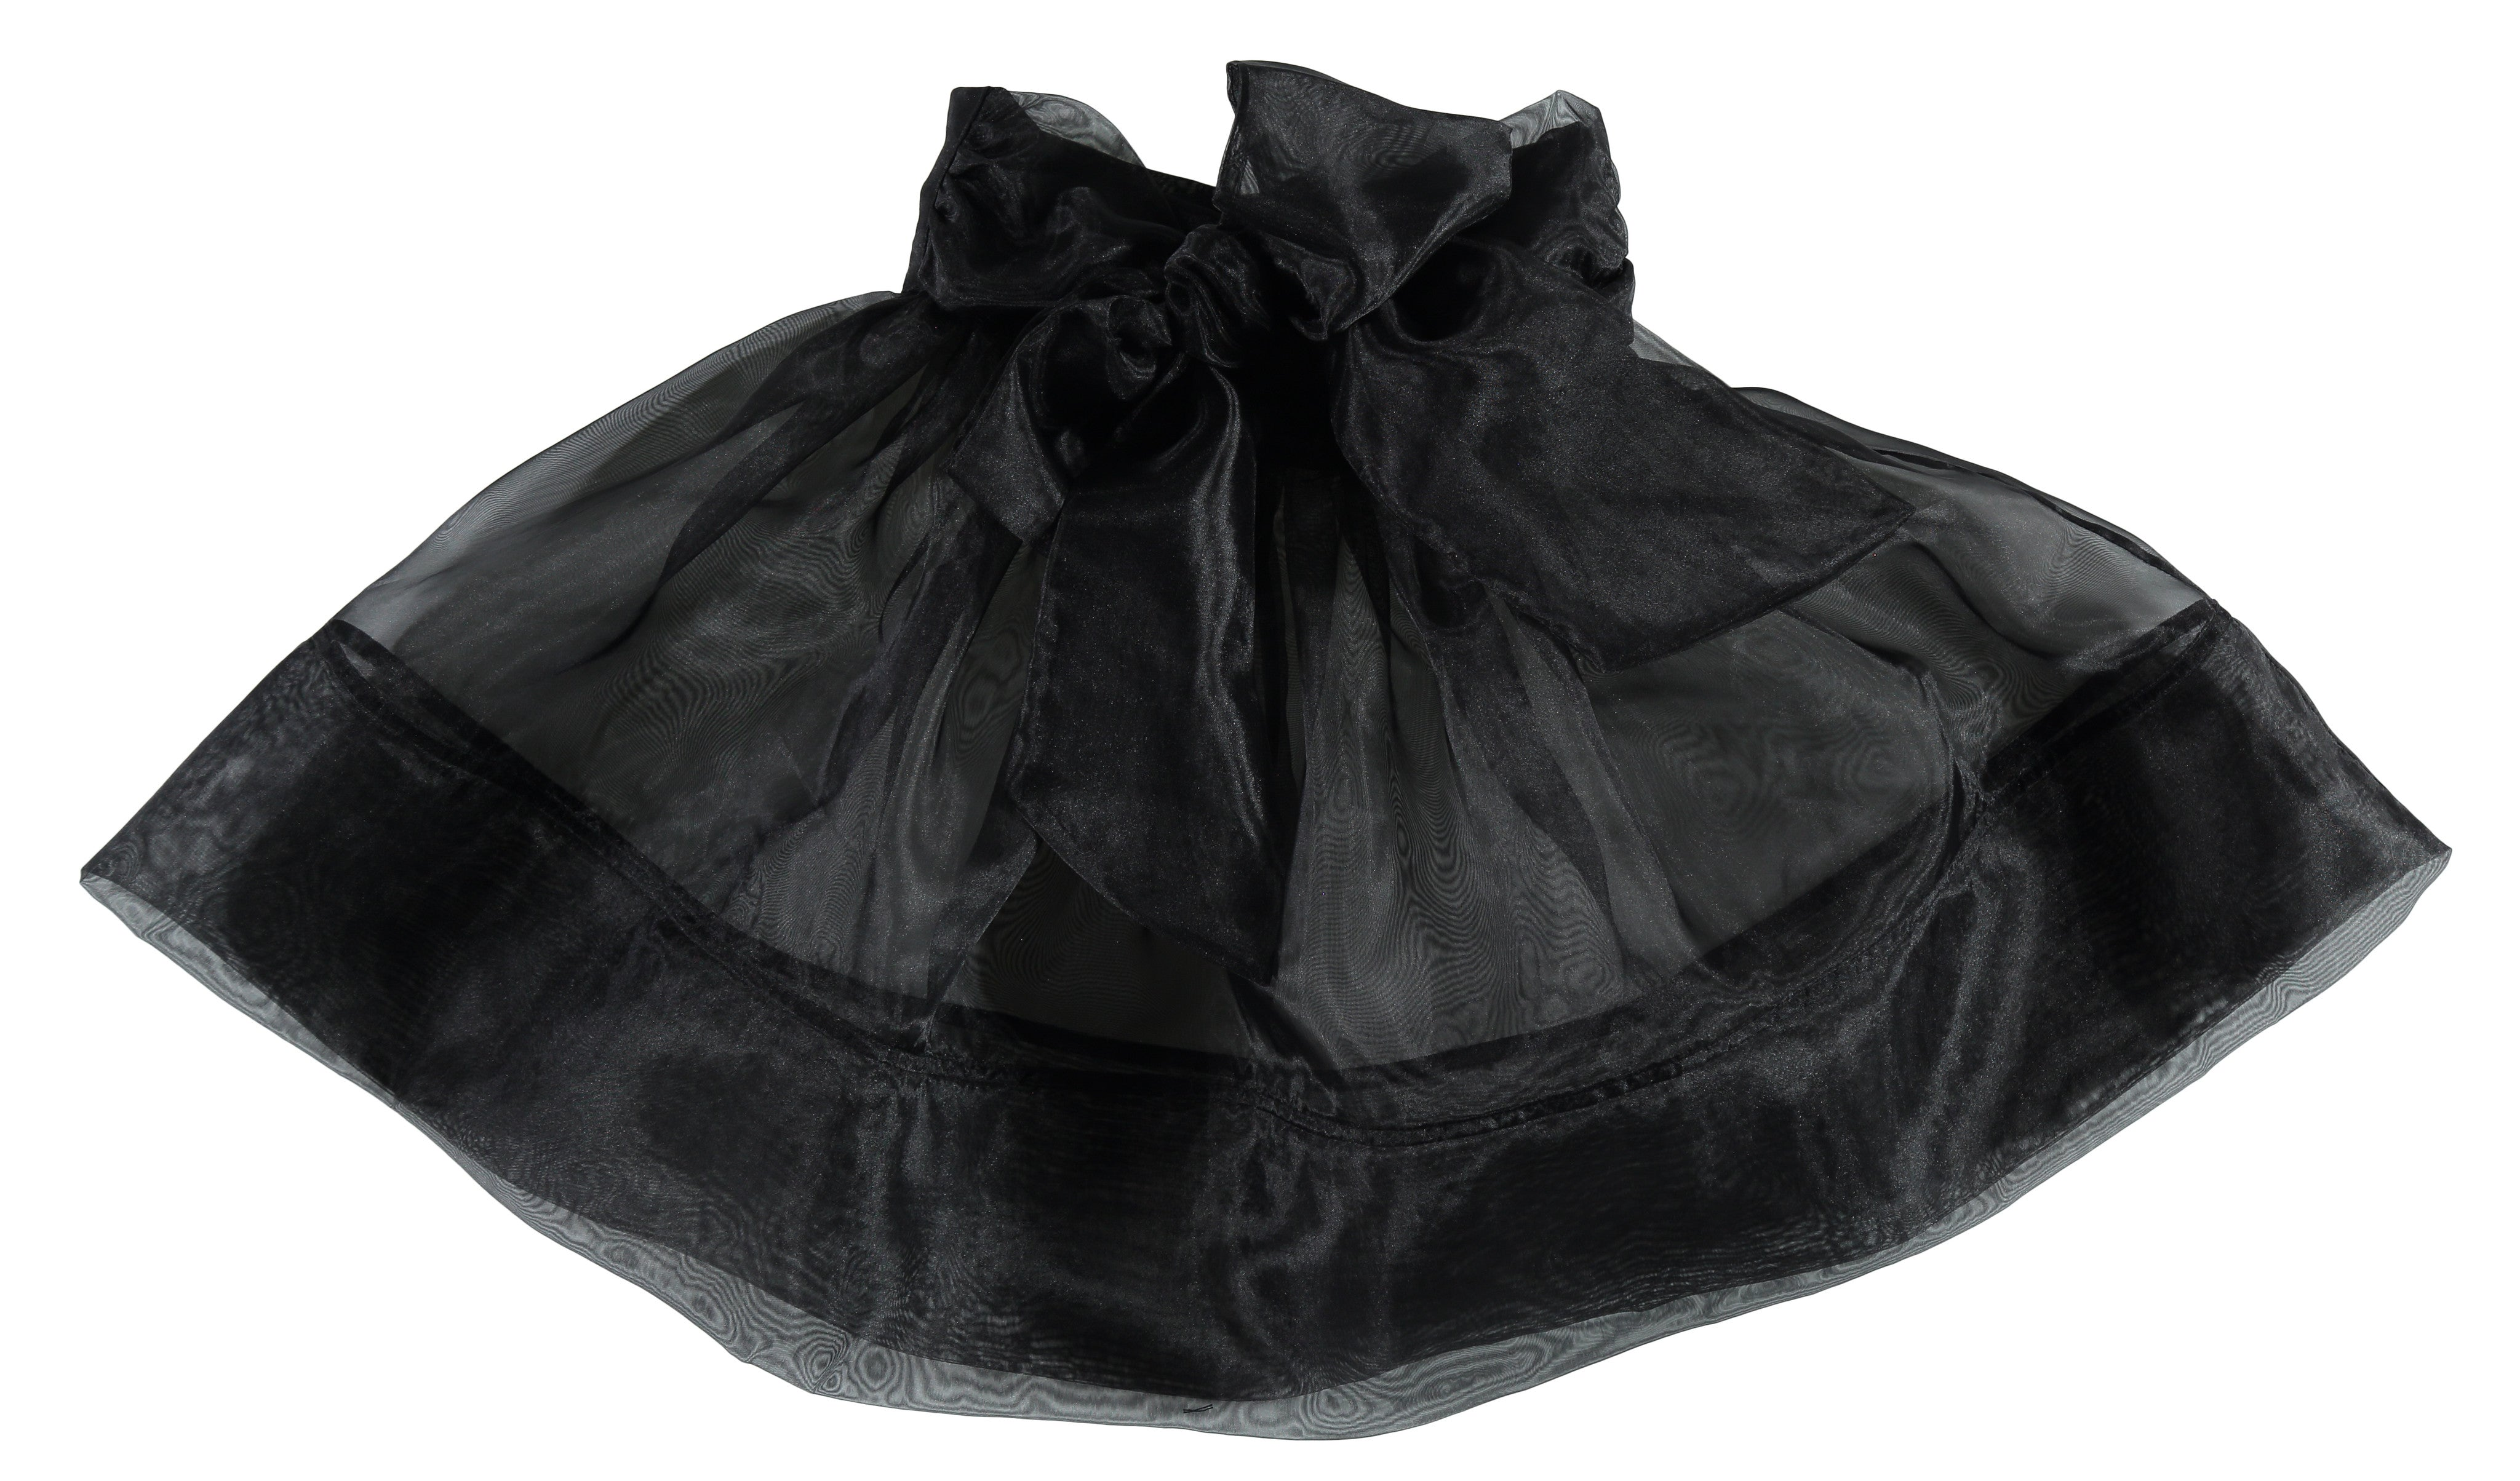 Carbon Soldier Black Flax Snail Skirt - Ladida